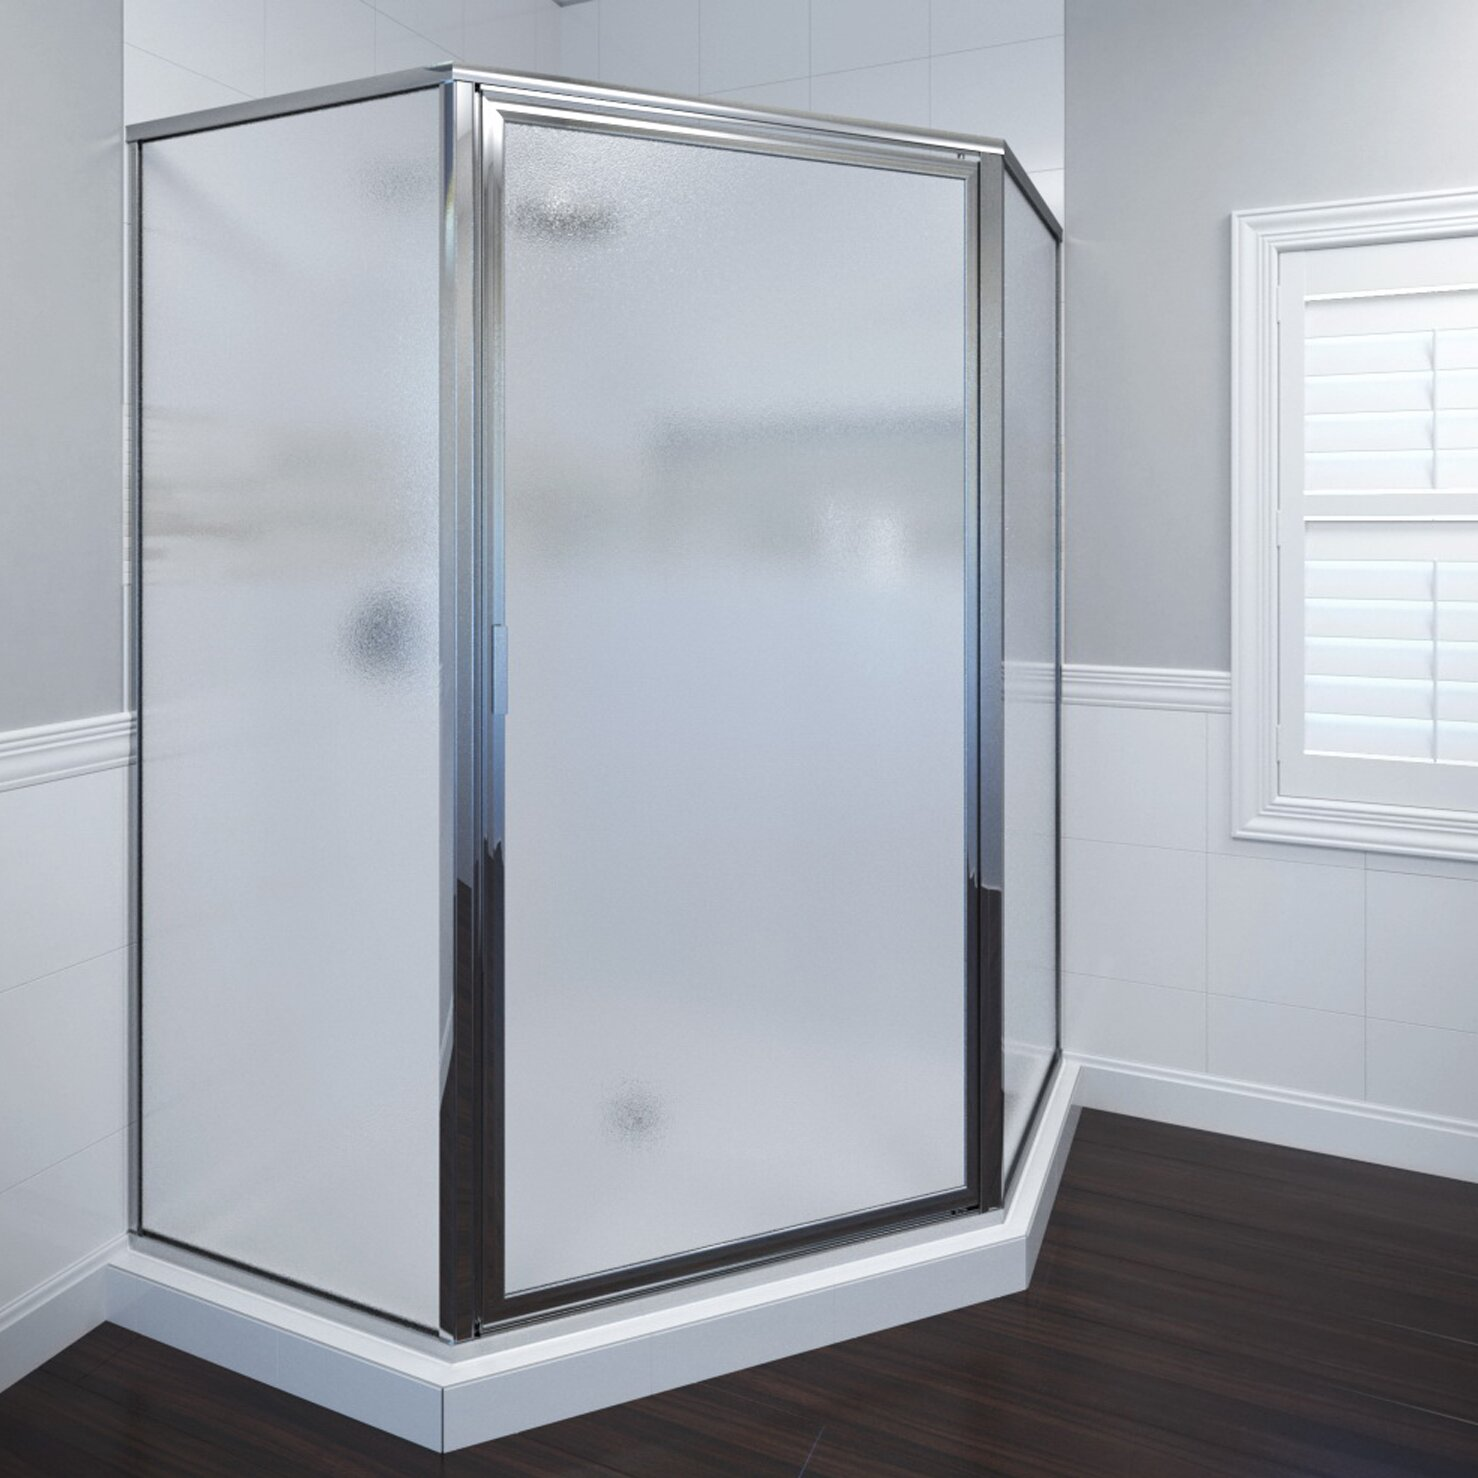 "Basco Deluxe 65.13"" X 48.5"" Neo-Angle Shower Door"